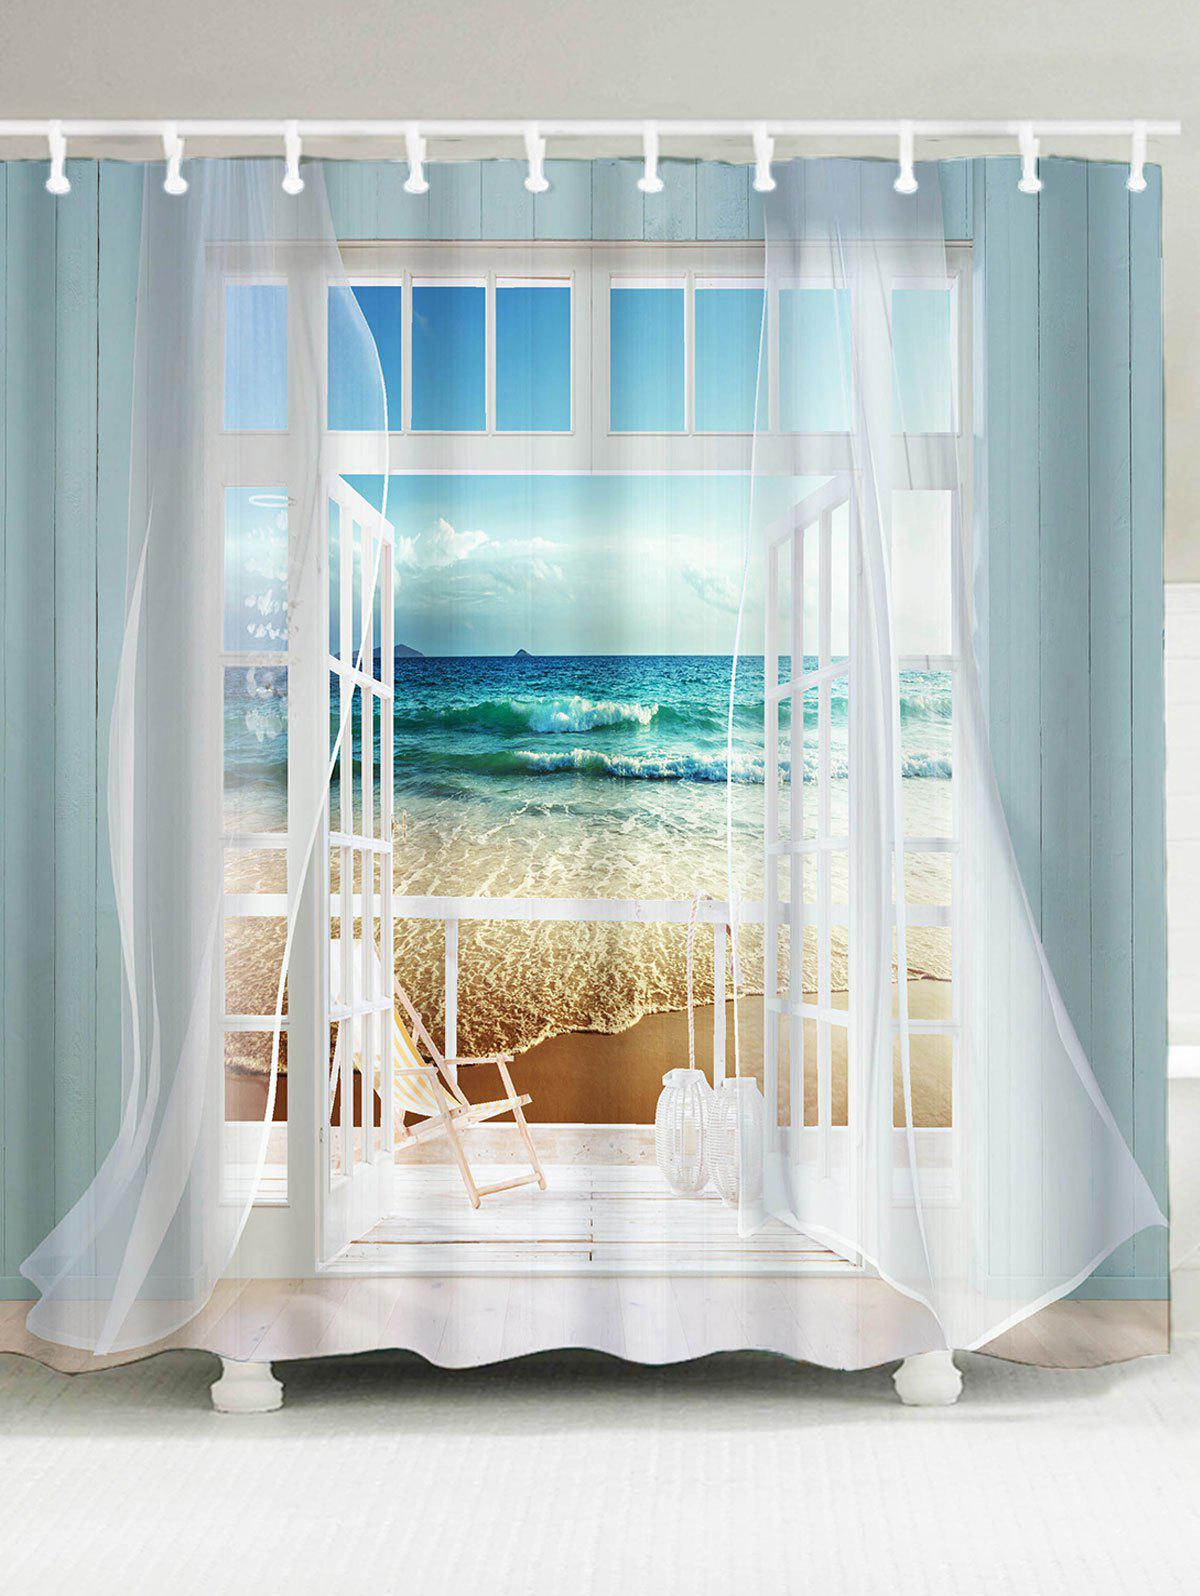 [44% OFF] Waterproof Window Frame Ocean Scene Printing